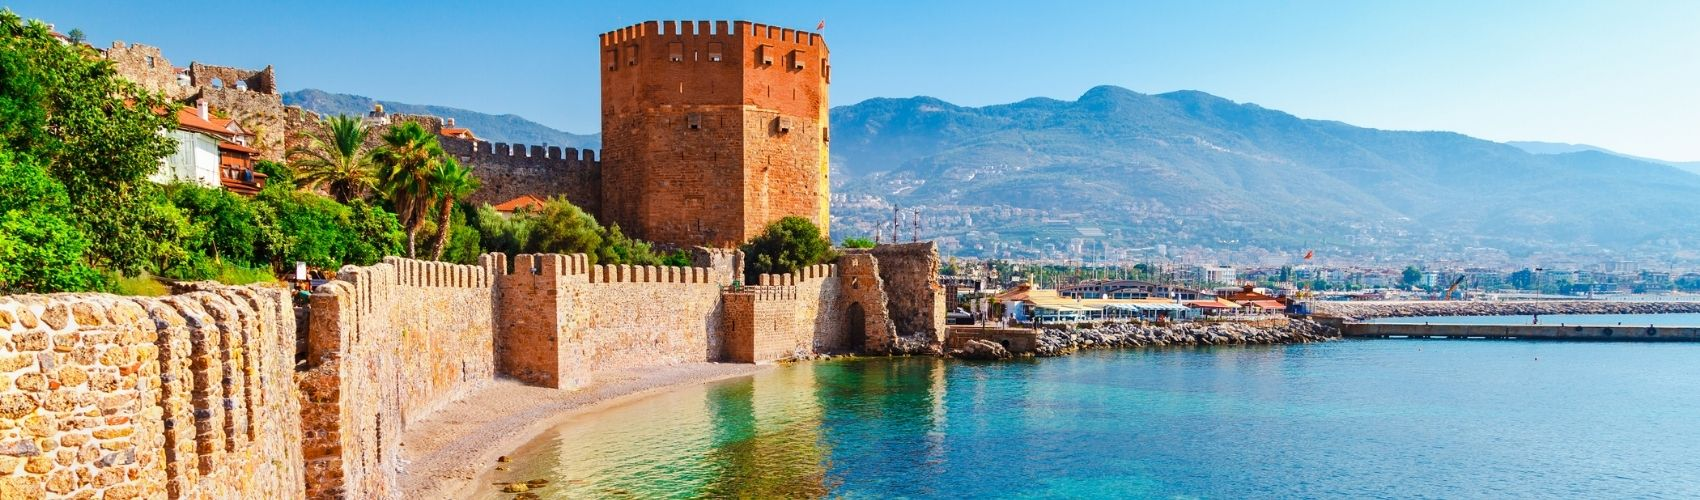 Private Full-day Sightseeing Tour from Antalya